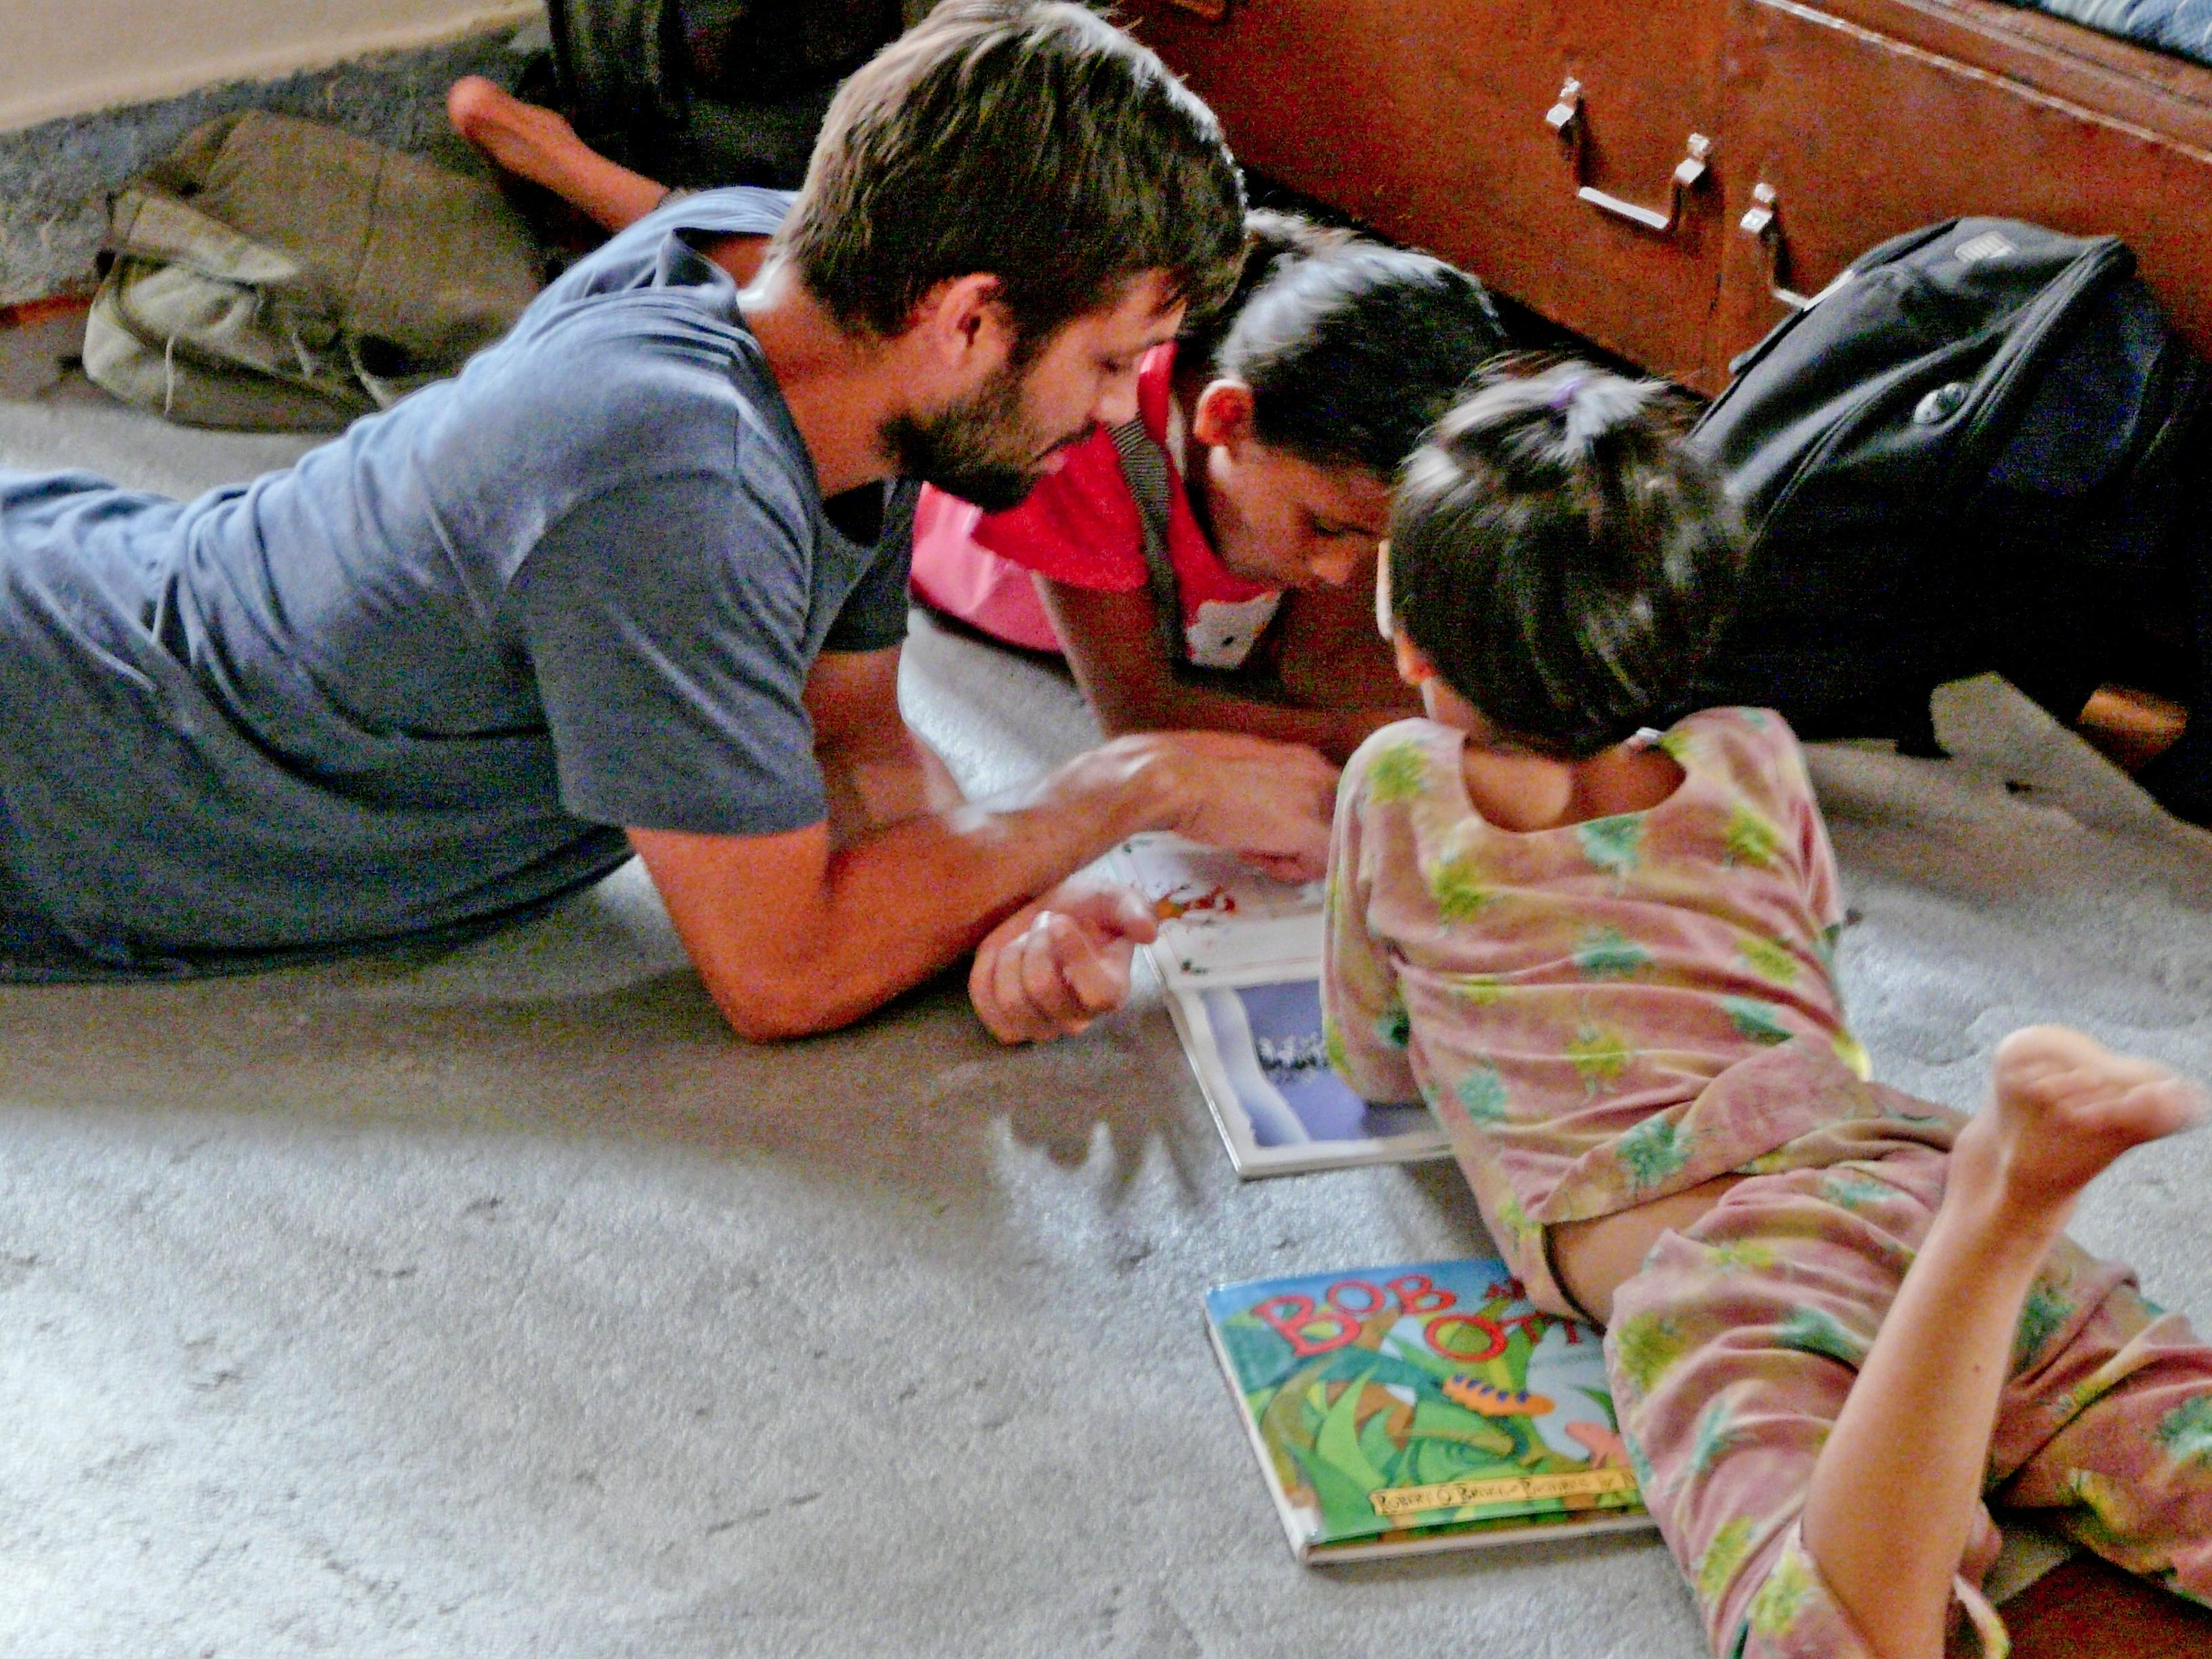 A Projects Abroad volunteer teaching English in Nepal reads a book to his students